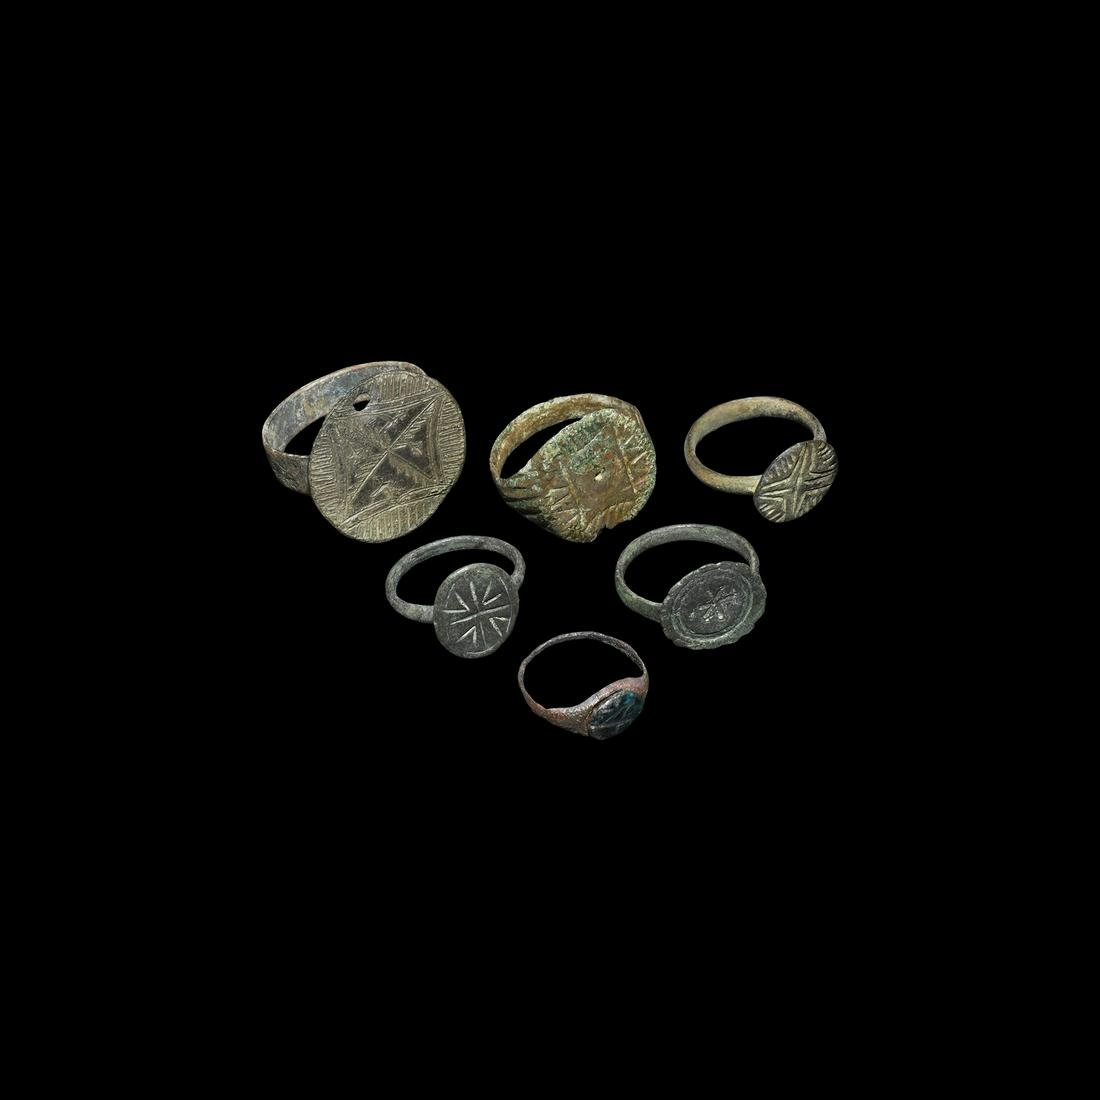 Medieval Ring Collection with Cross Motifs